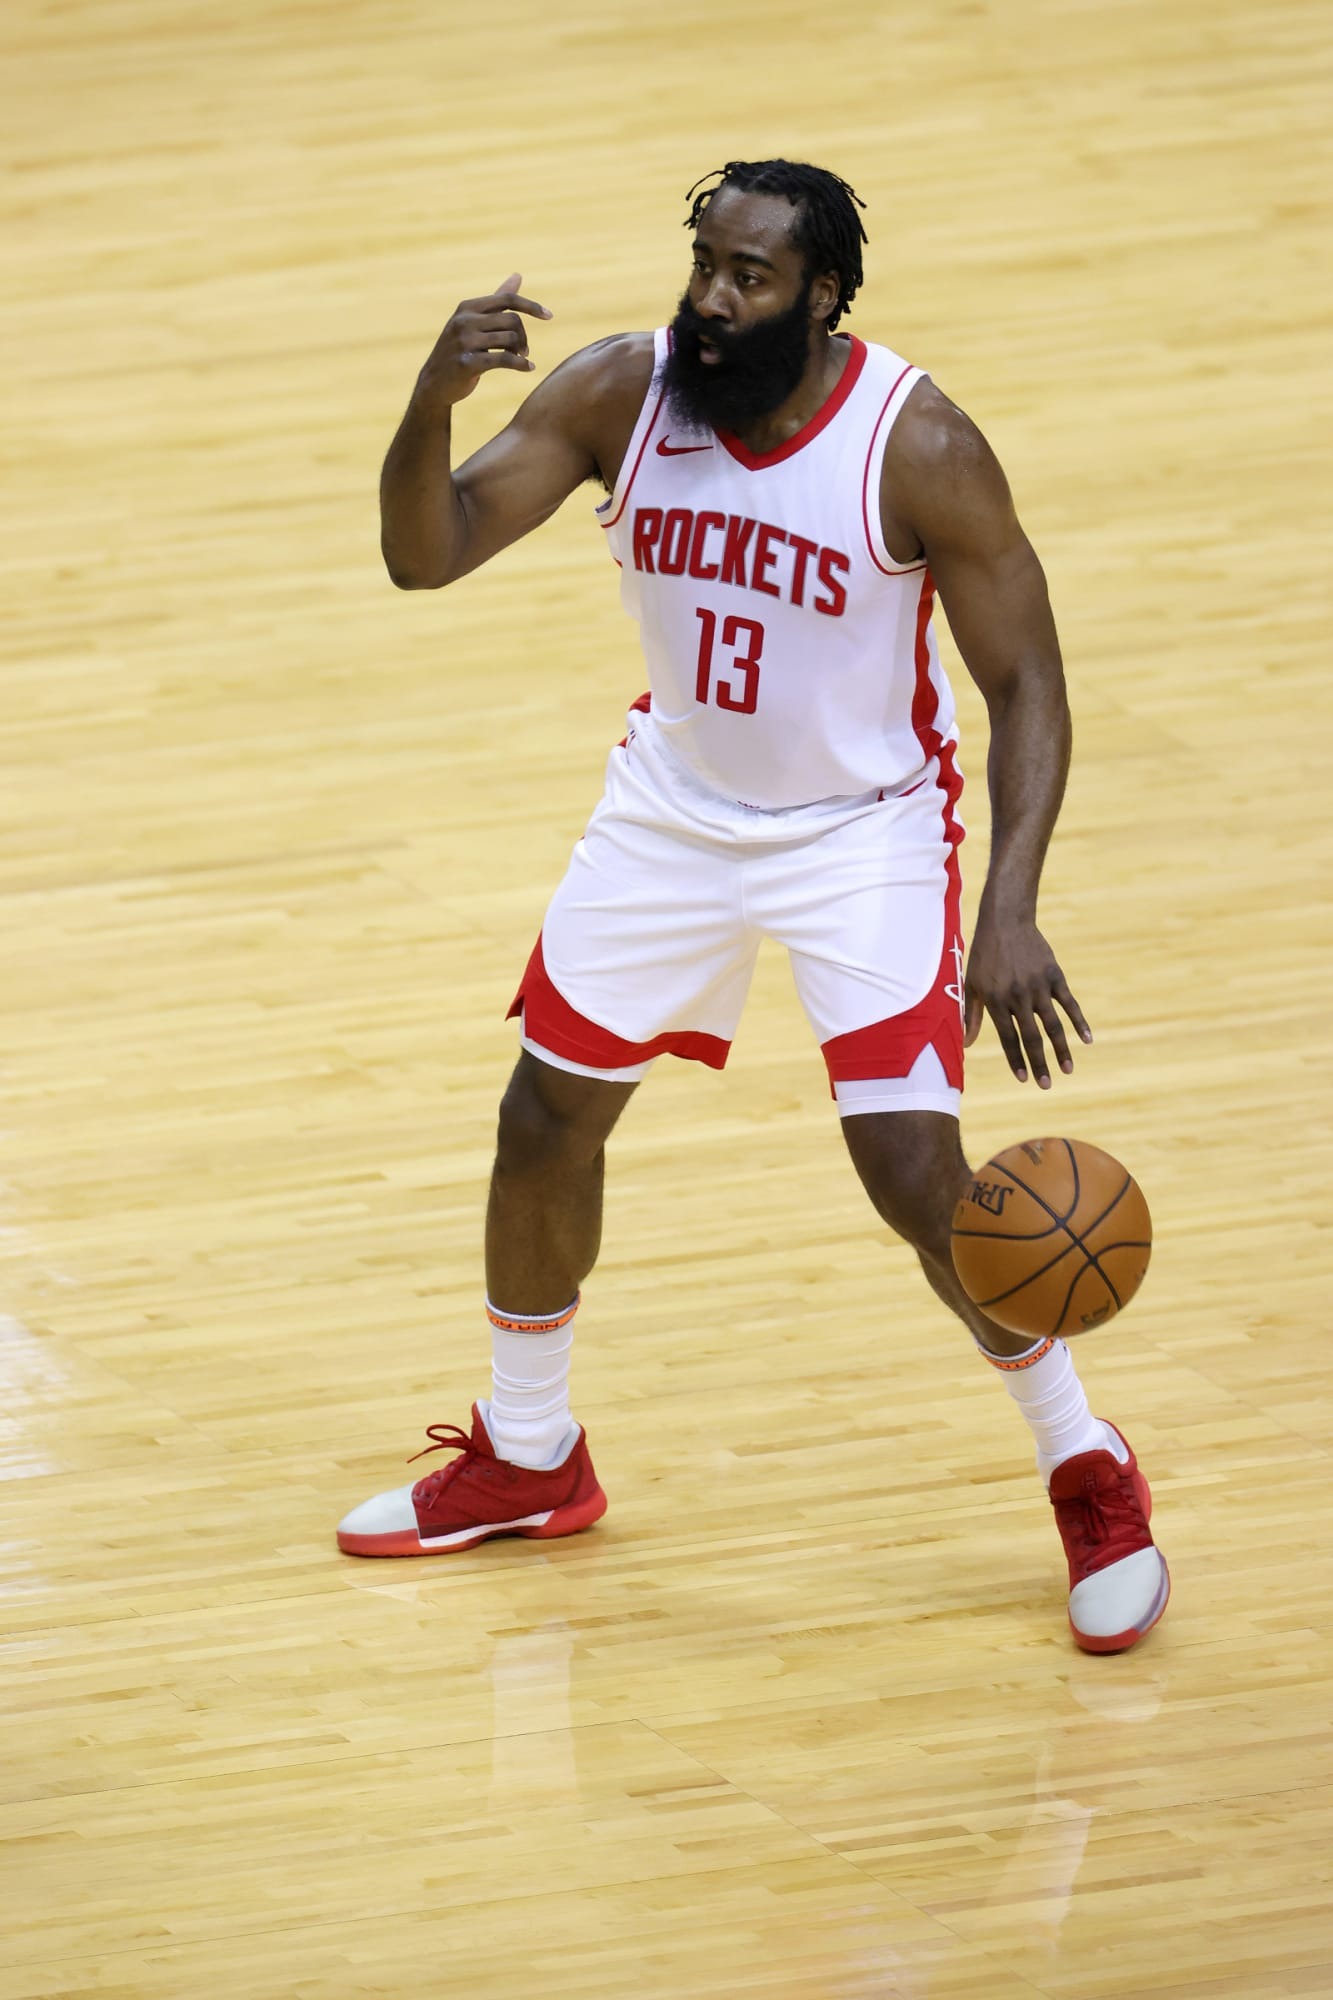 Toronto Raptors: Three possible trades for James Harden